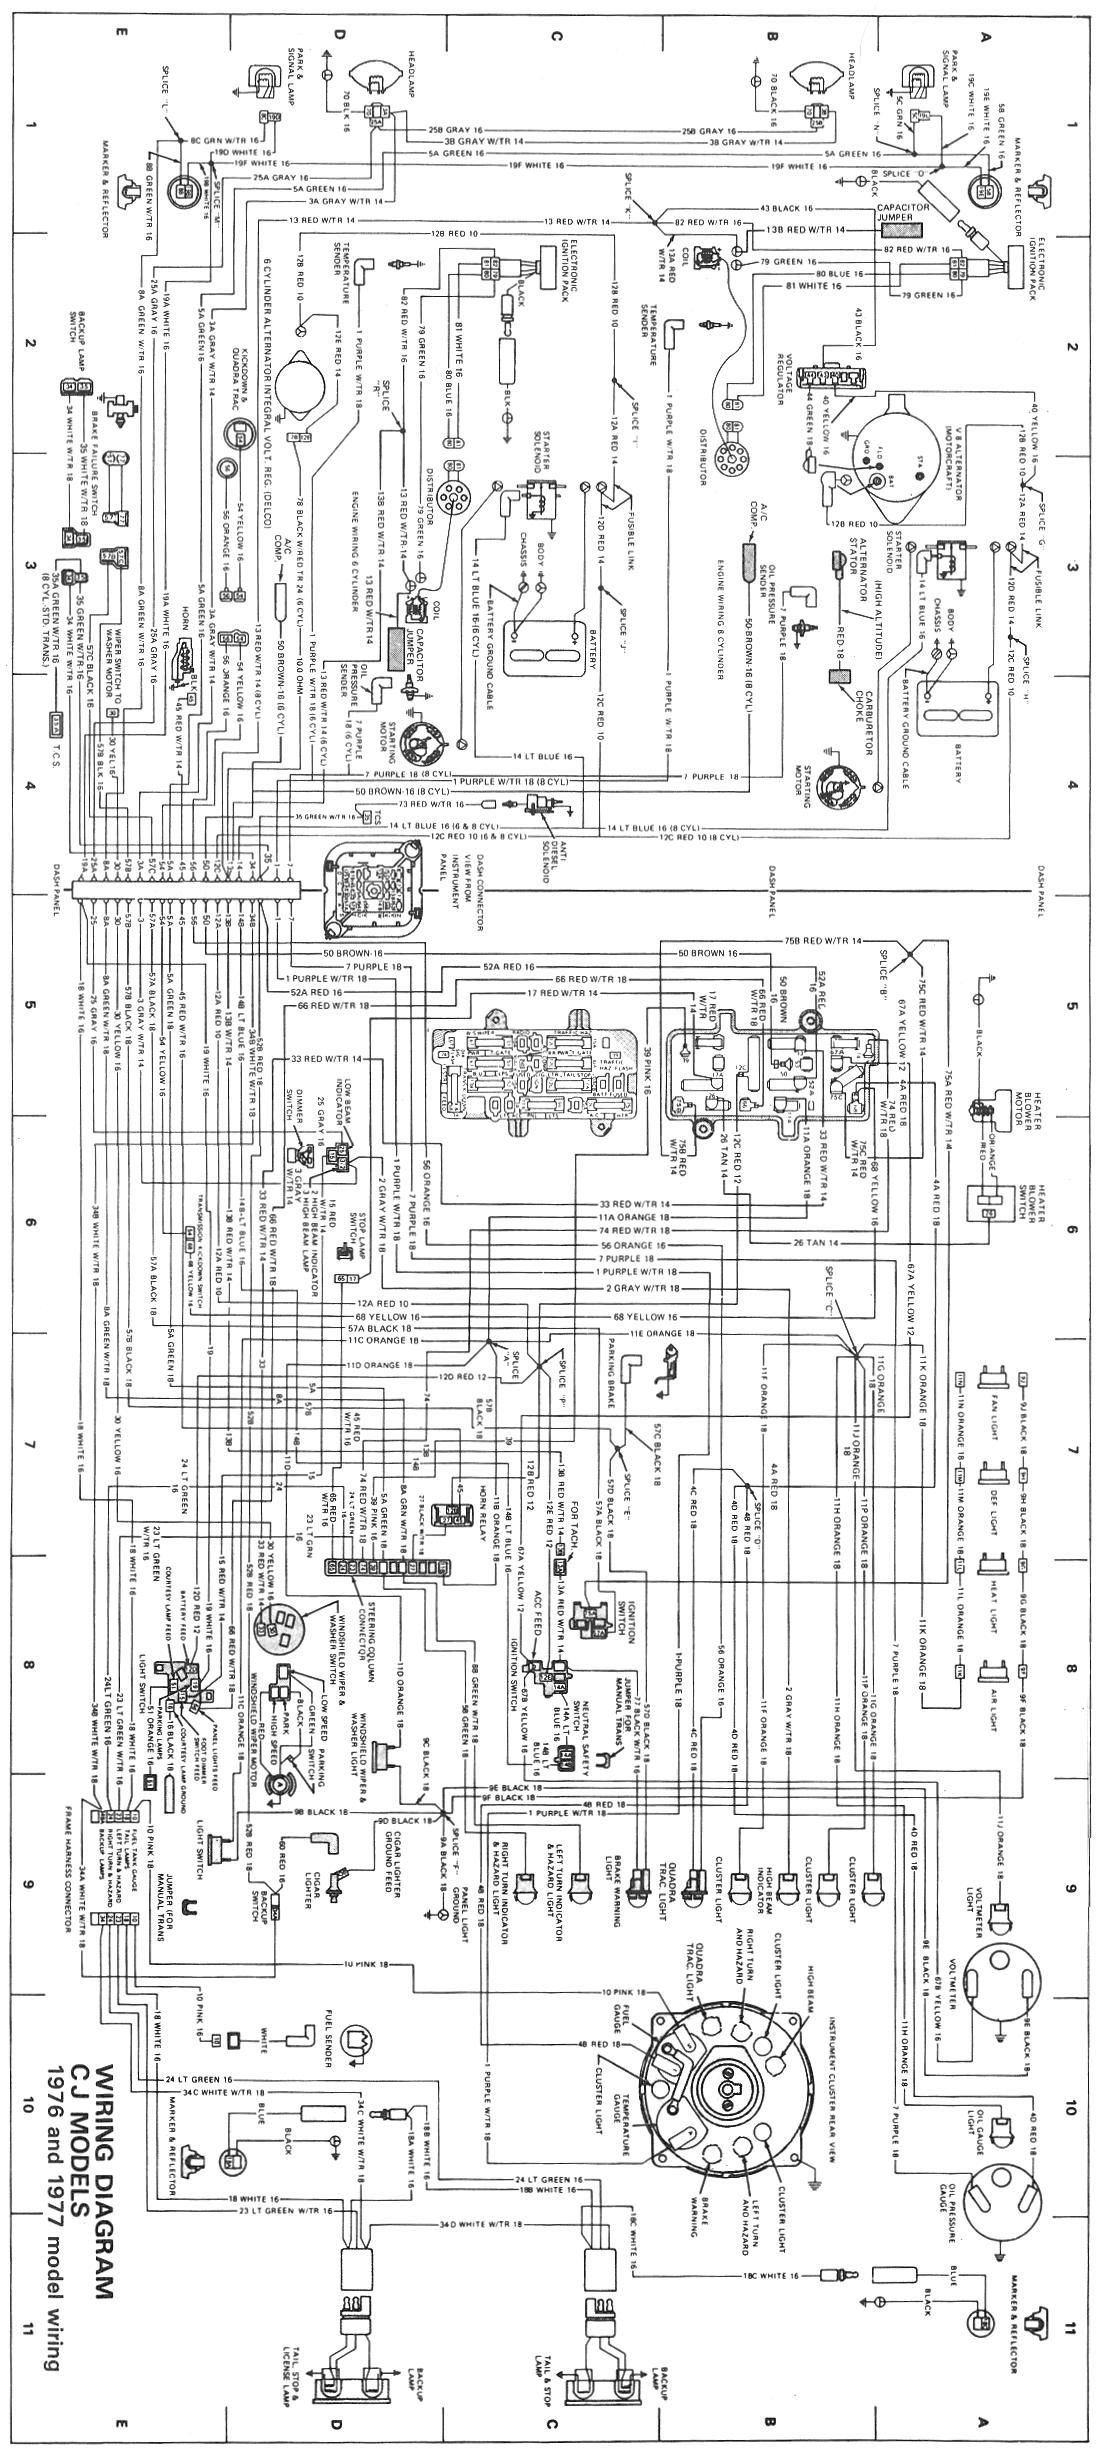 8d25ded6e3673519e155875e09844e5e cj wiring diagram 1976 1977 jpg 1,100�2,459 pixels 1976 jeep cj5 grand wagoneer wiring diagram at readyjetset.co